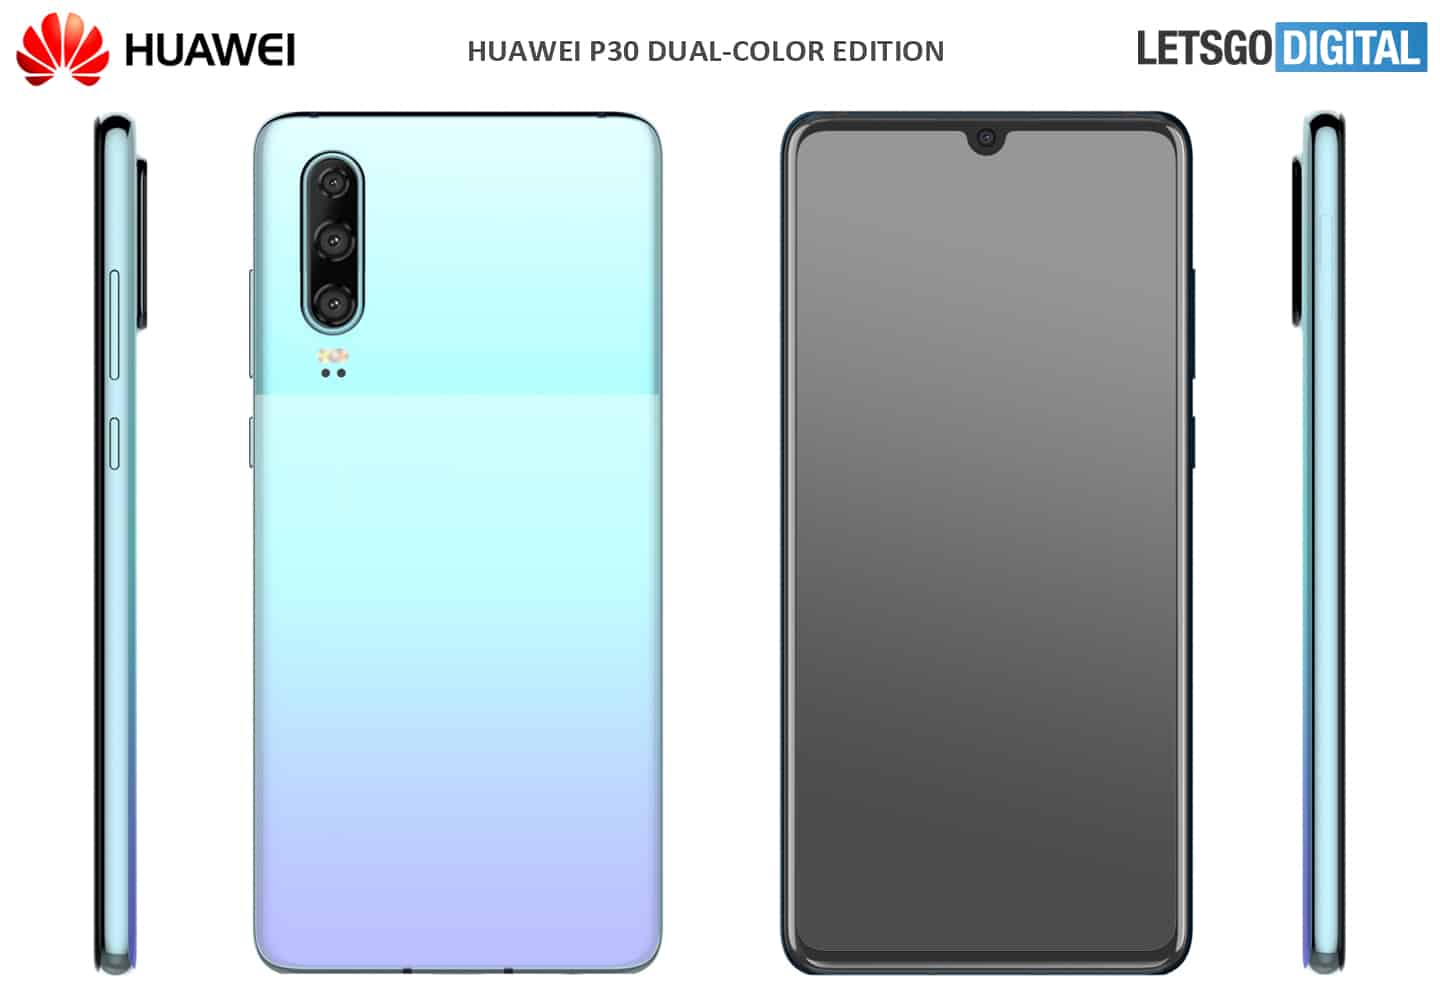 Huawei P30 dual color option 1